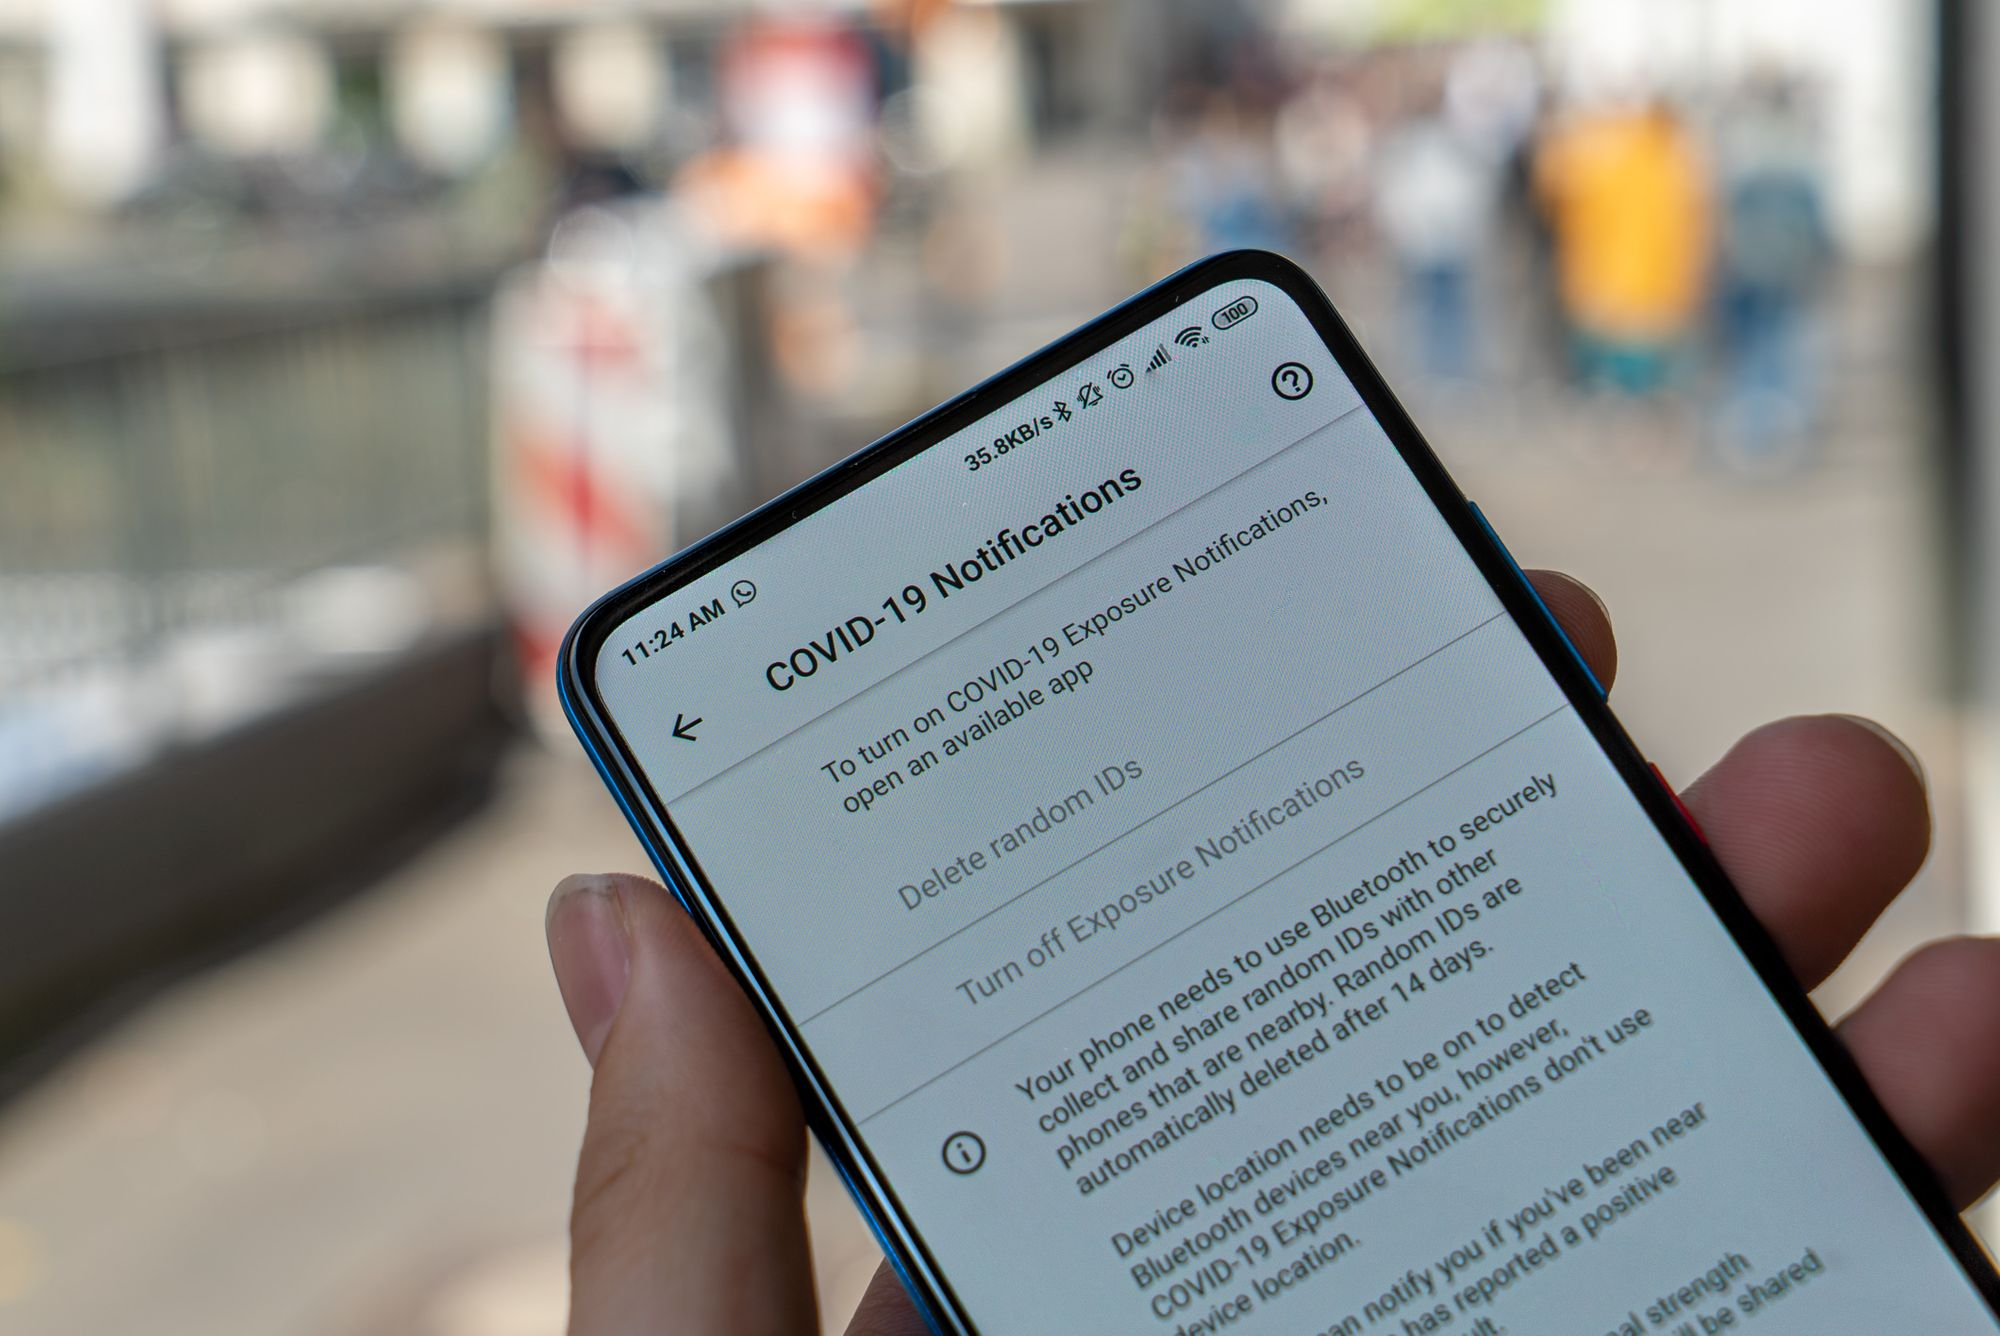 A COVID-19 notification message on a smartphone thanks to Beacon Technology.